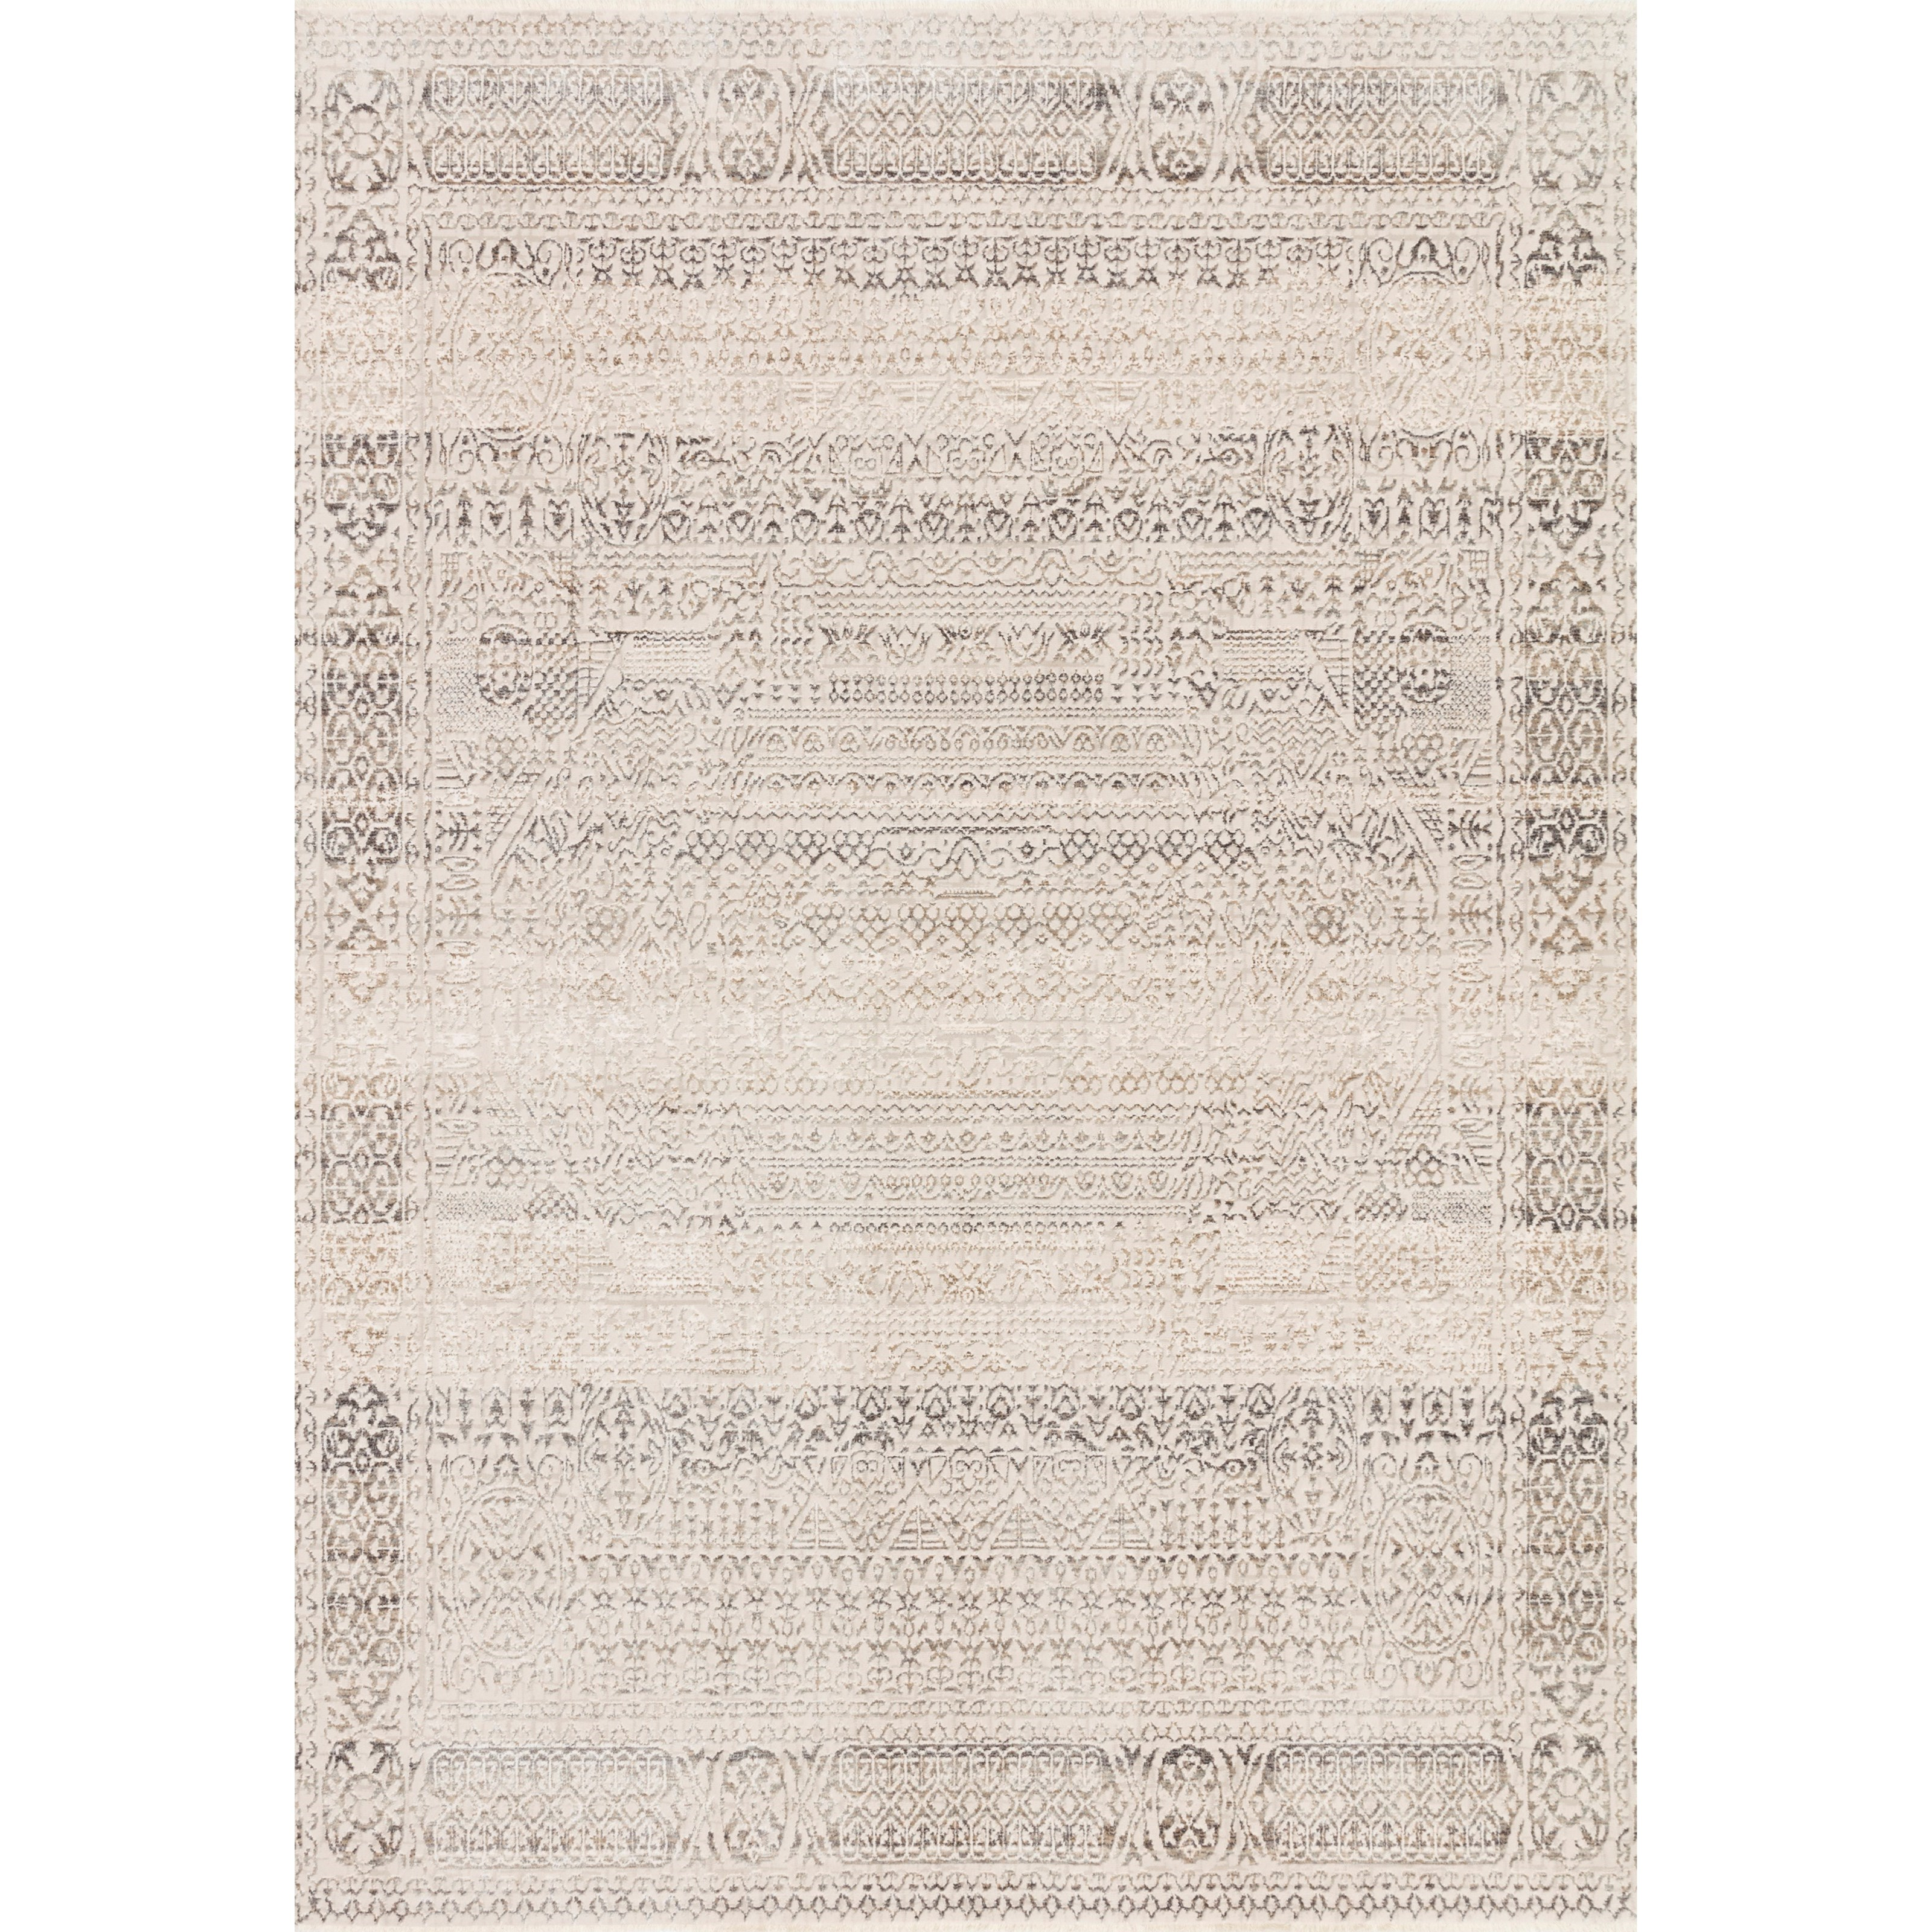 """Homage 2'6"""" x 16'0"""" Ivory / Silver Rug by Loloi Rugs at Virginia Furniture Market"""